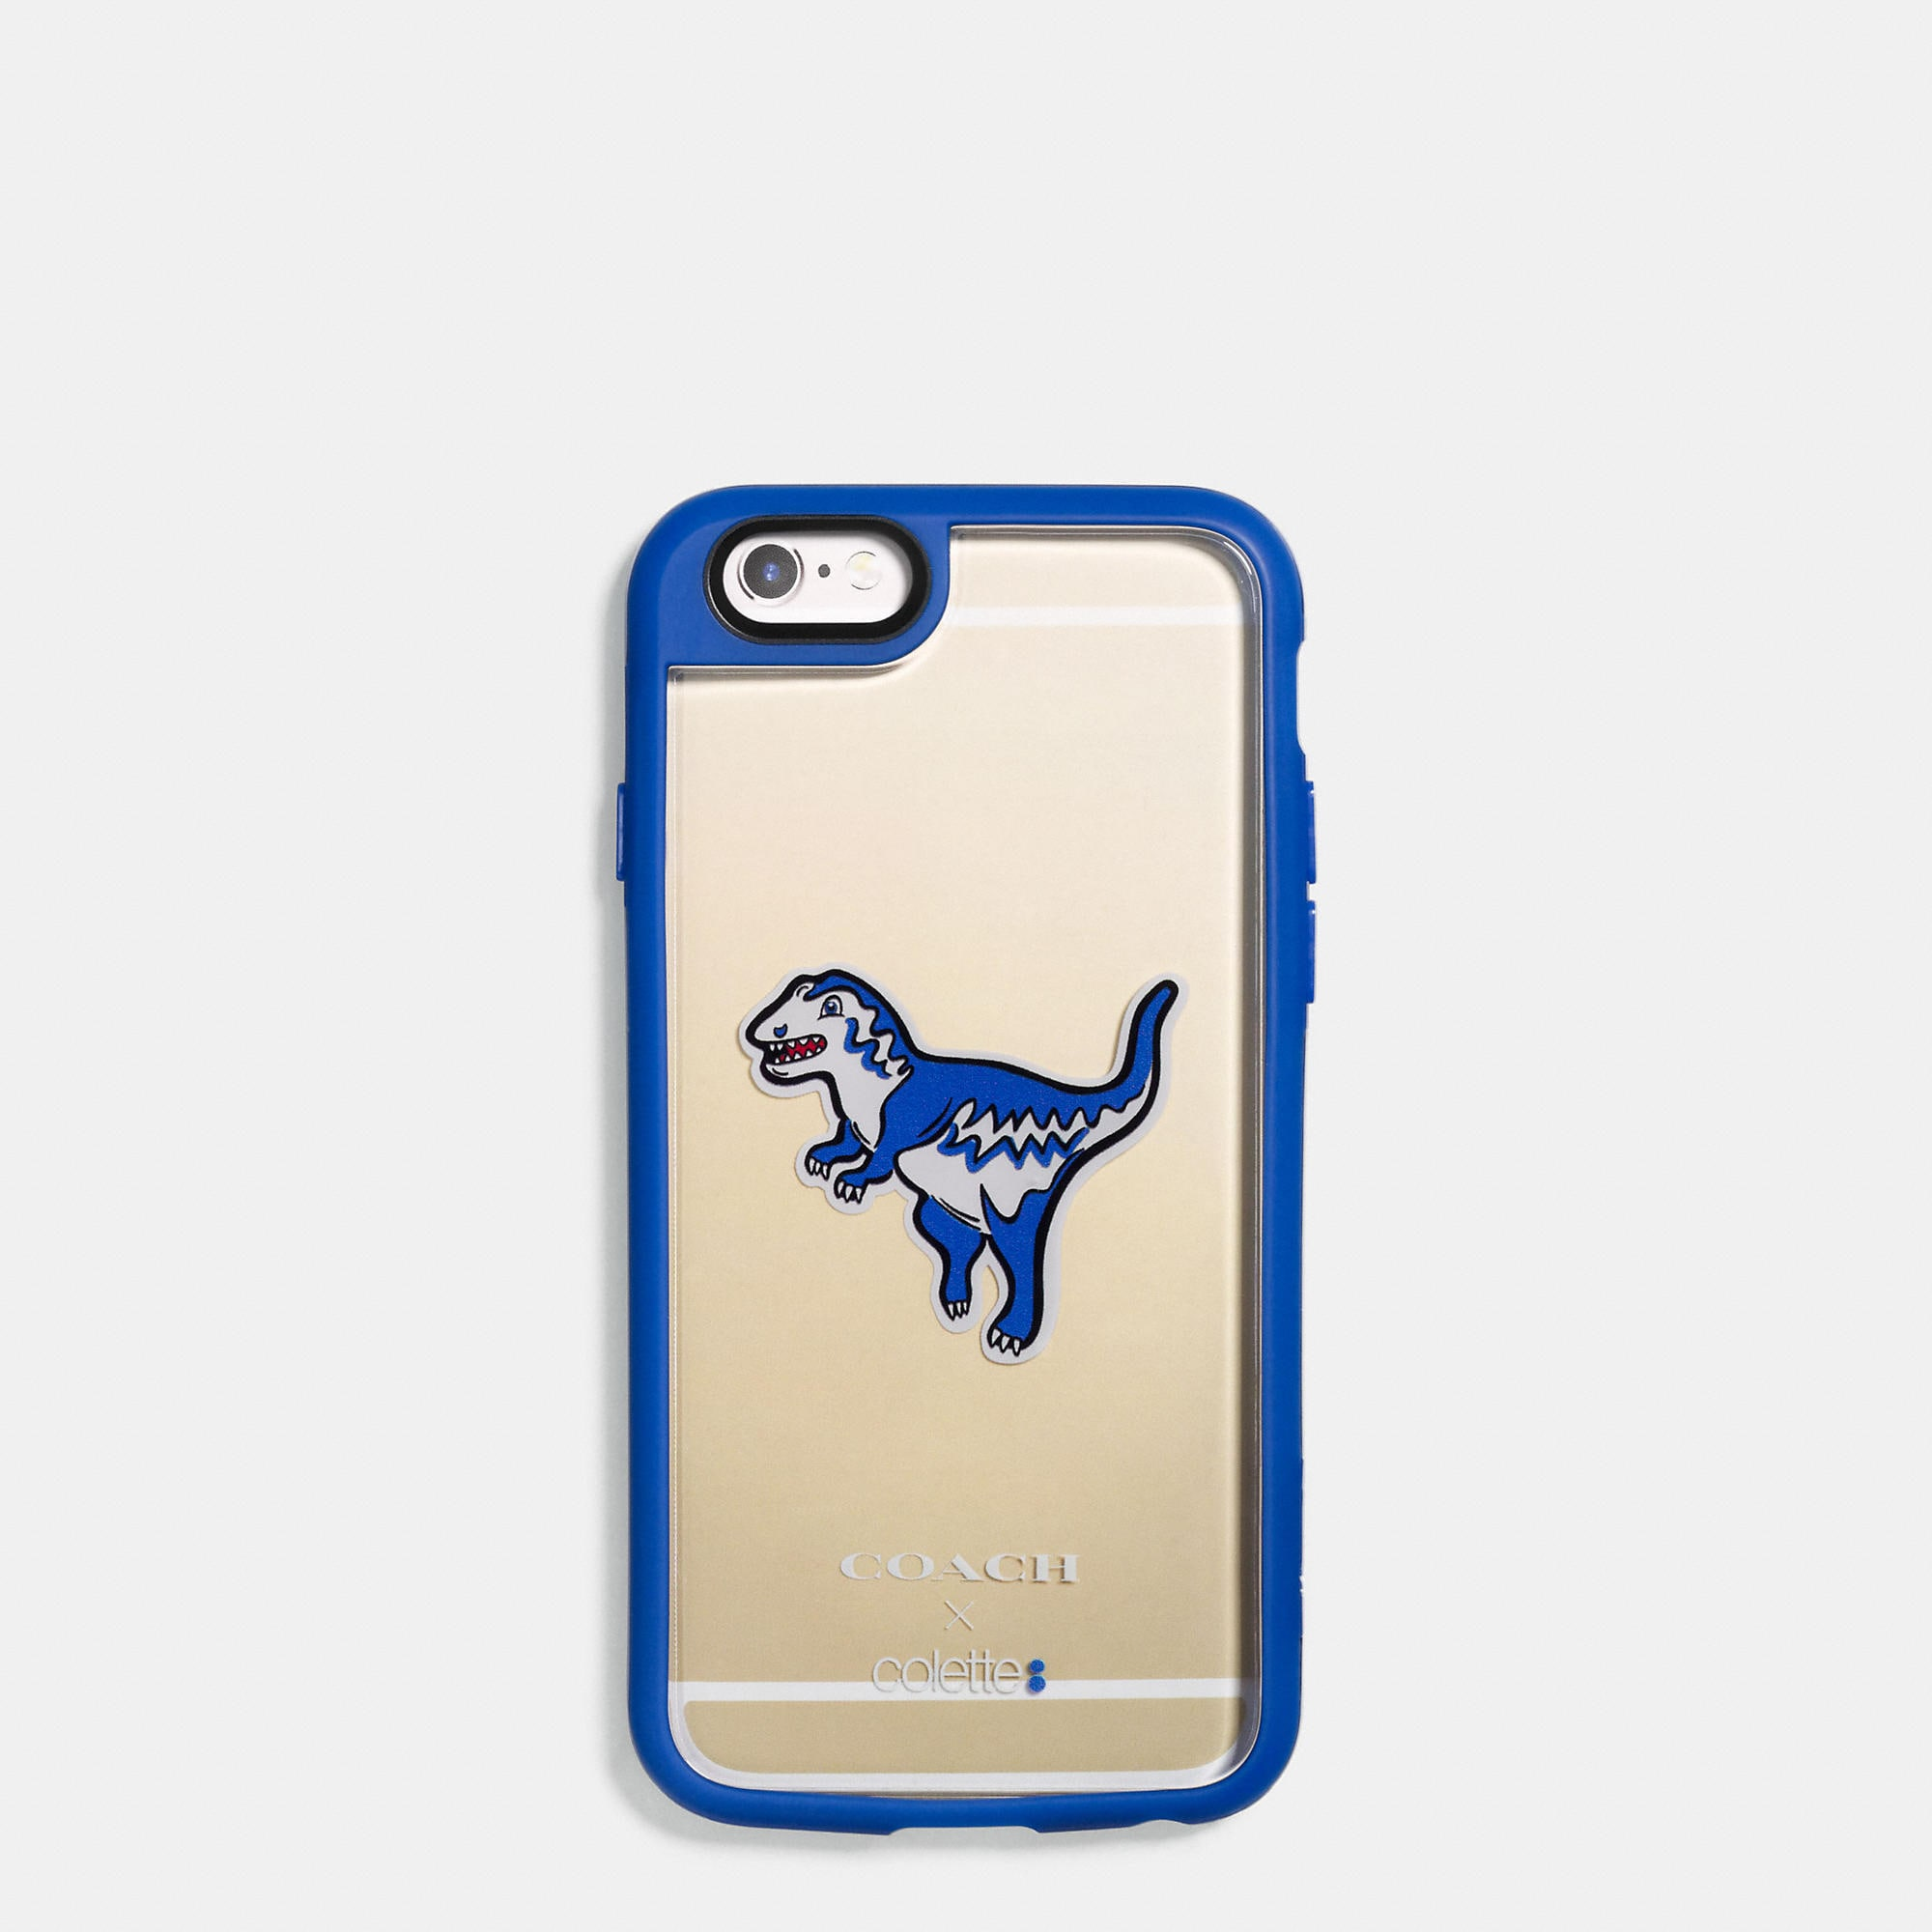 Coach Colette X Casetify Iphone Case 6